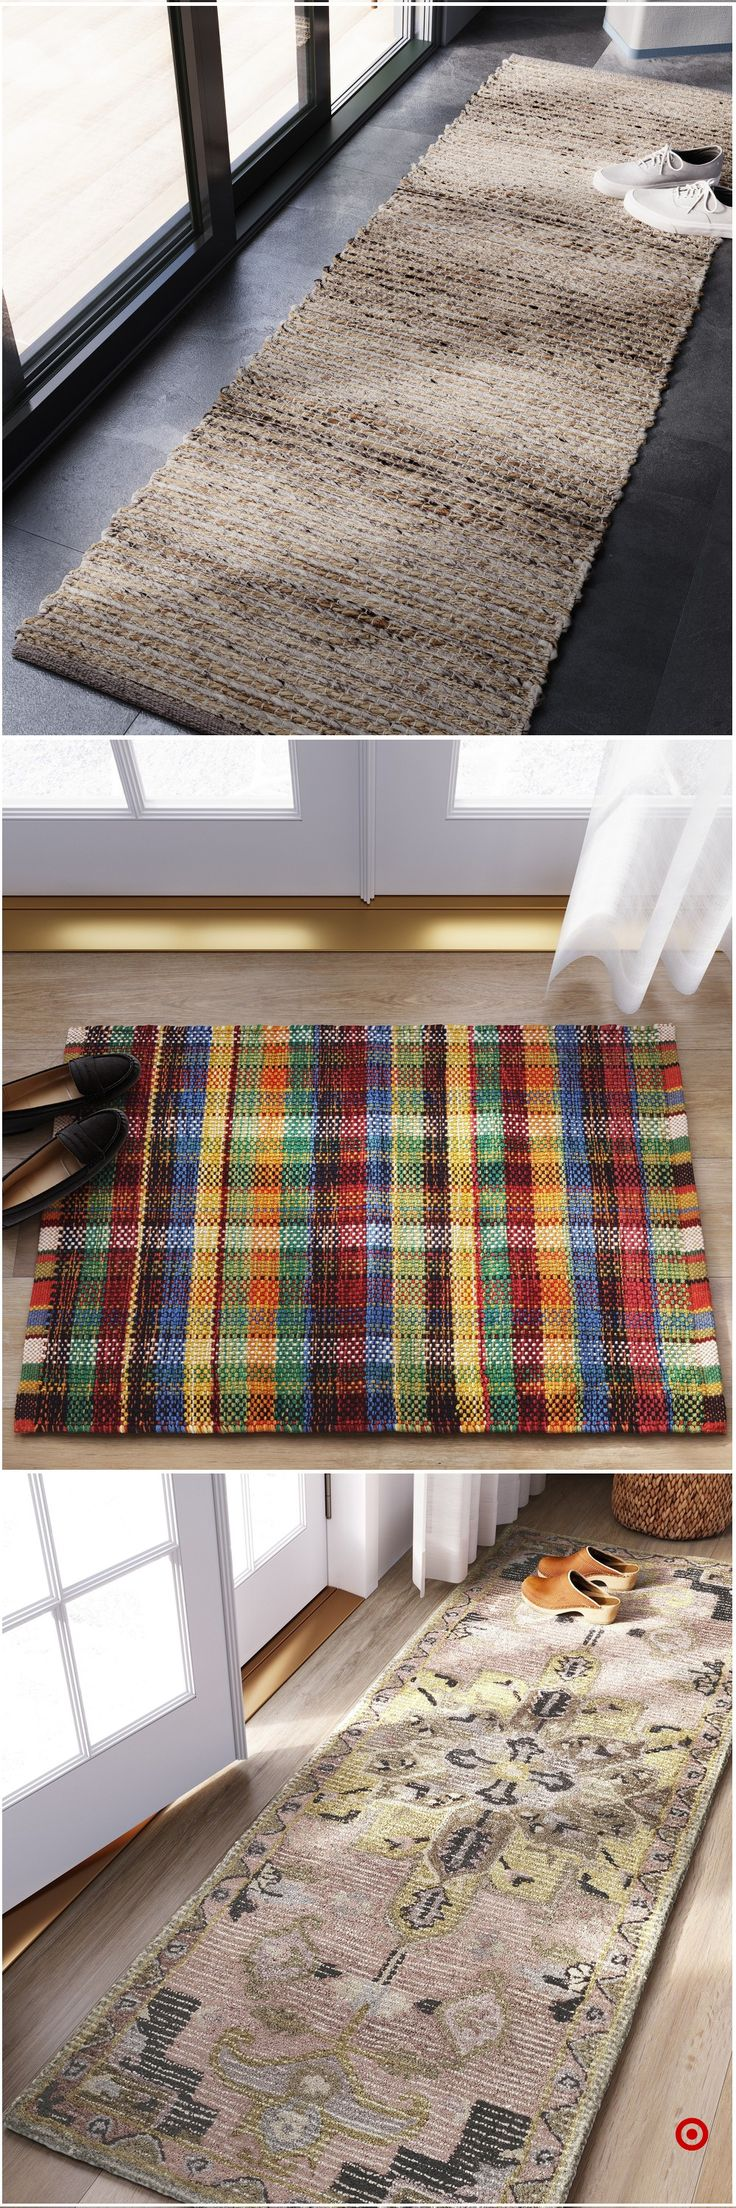 Shop Target for floor mat you will love at great low prices. Free shipping on orders of $35+ or free same-day pick-up in store.